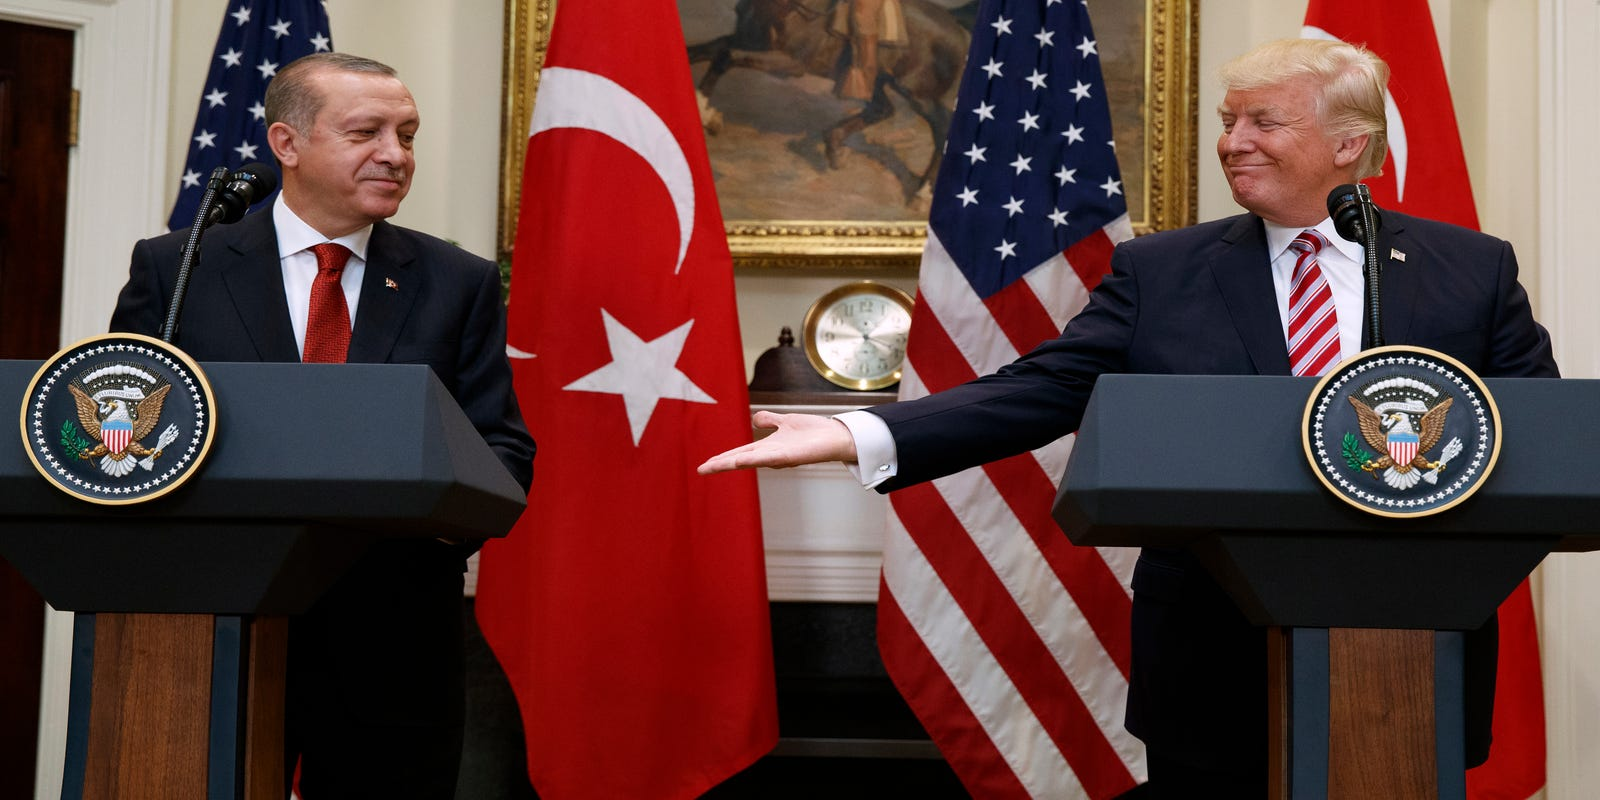 'A particularly inappropriate time': Trump to welcome Erdogan despite Syria attack